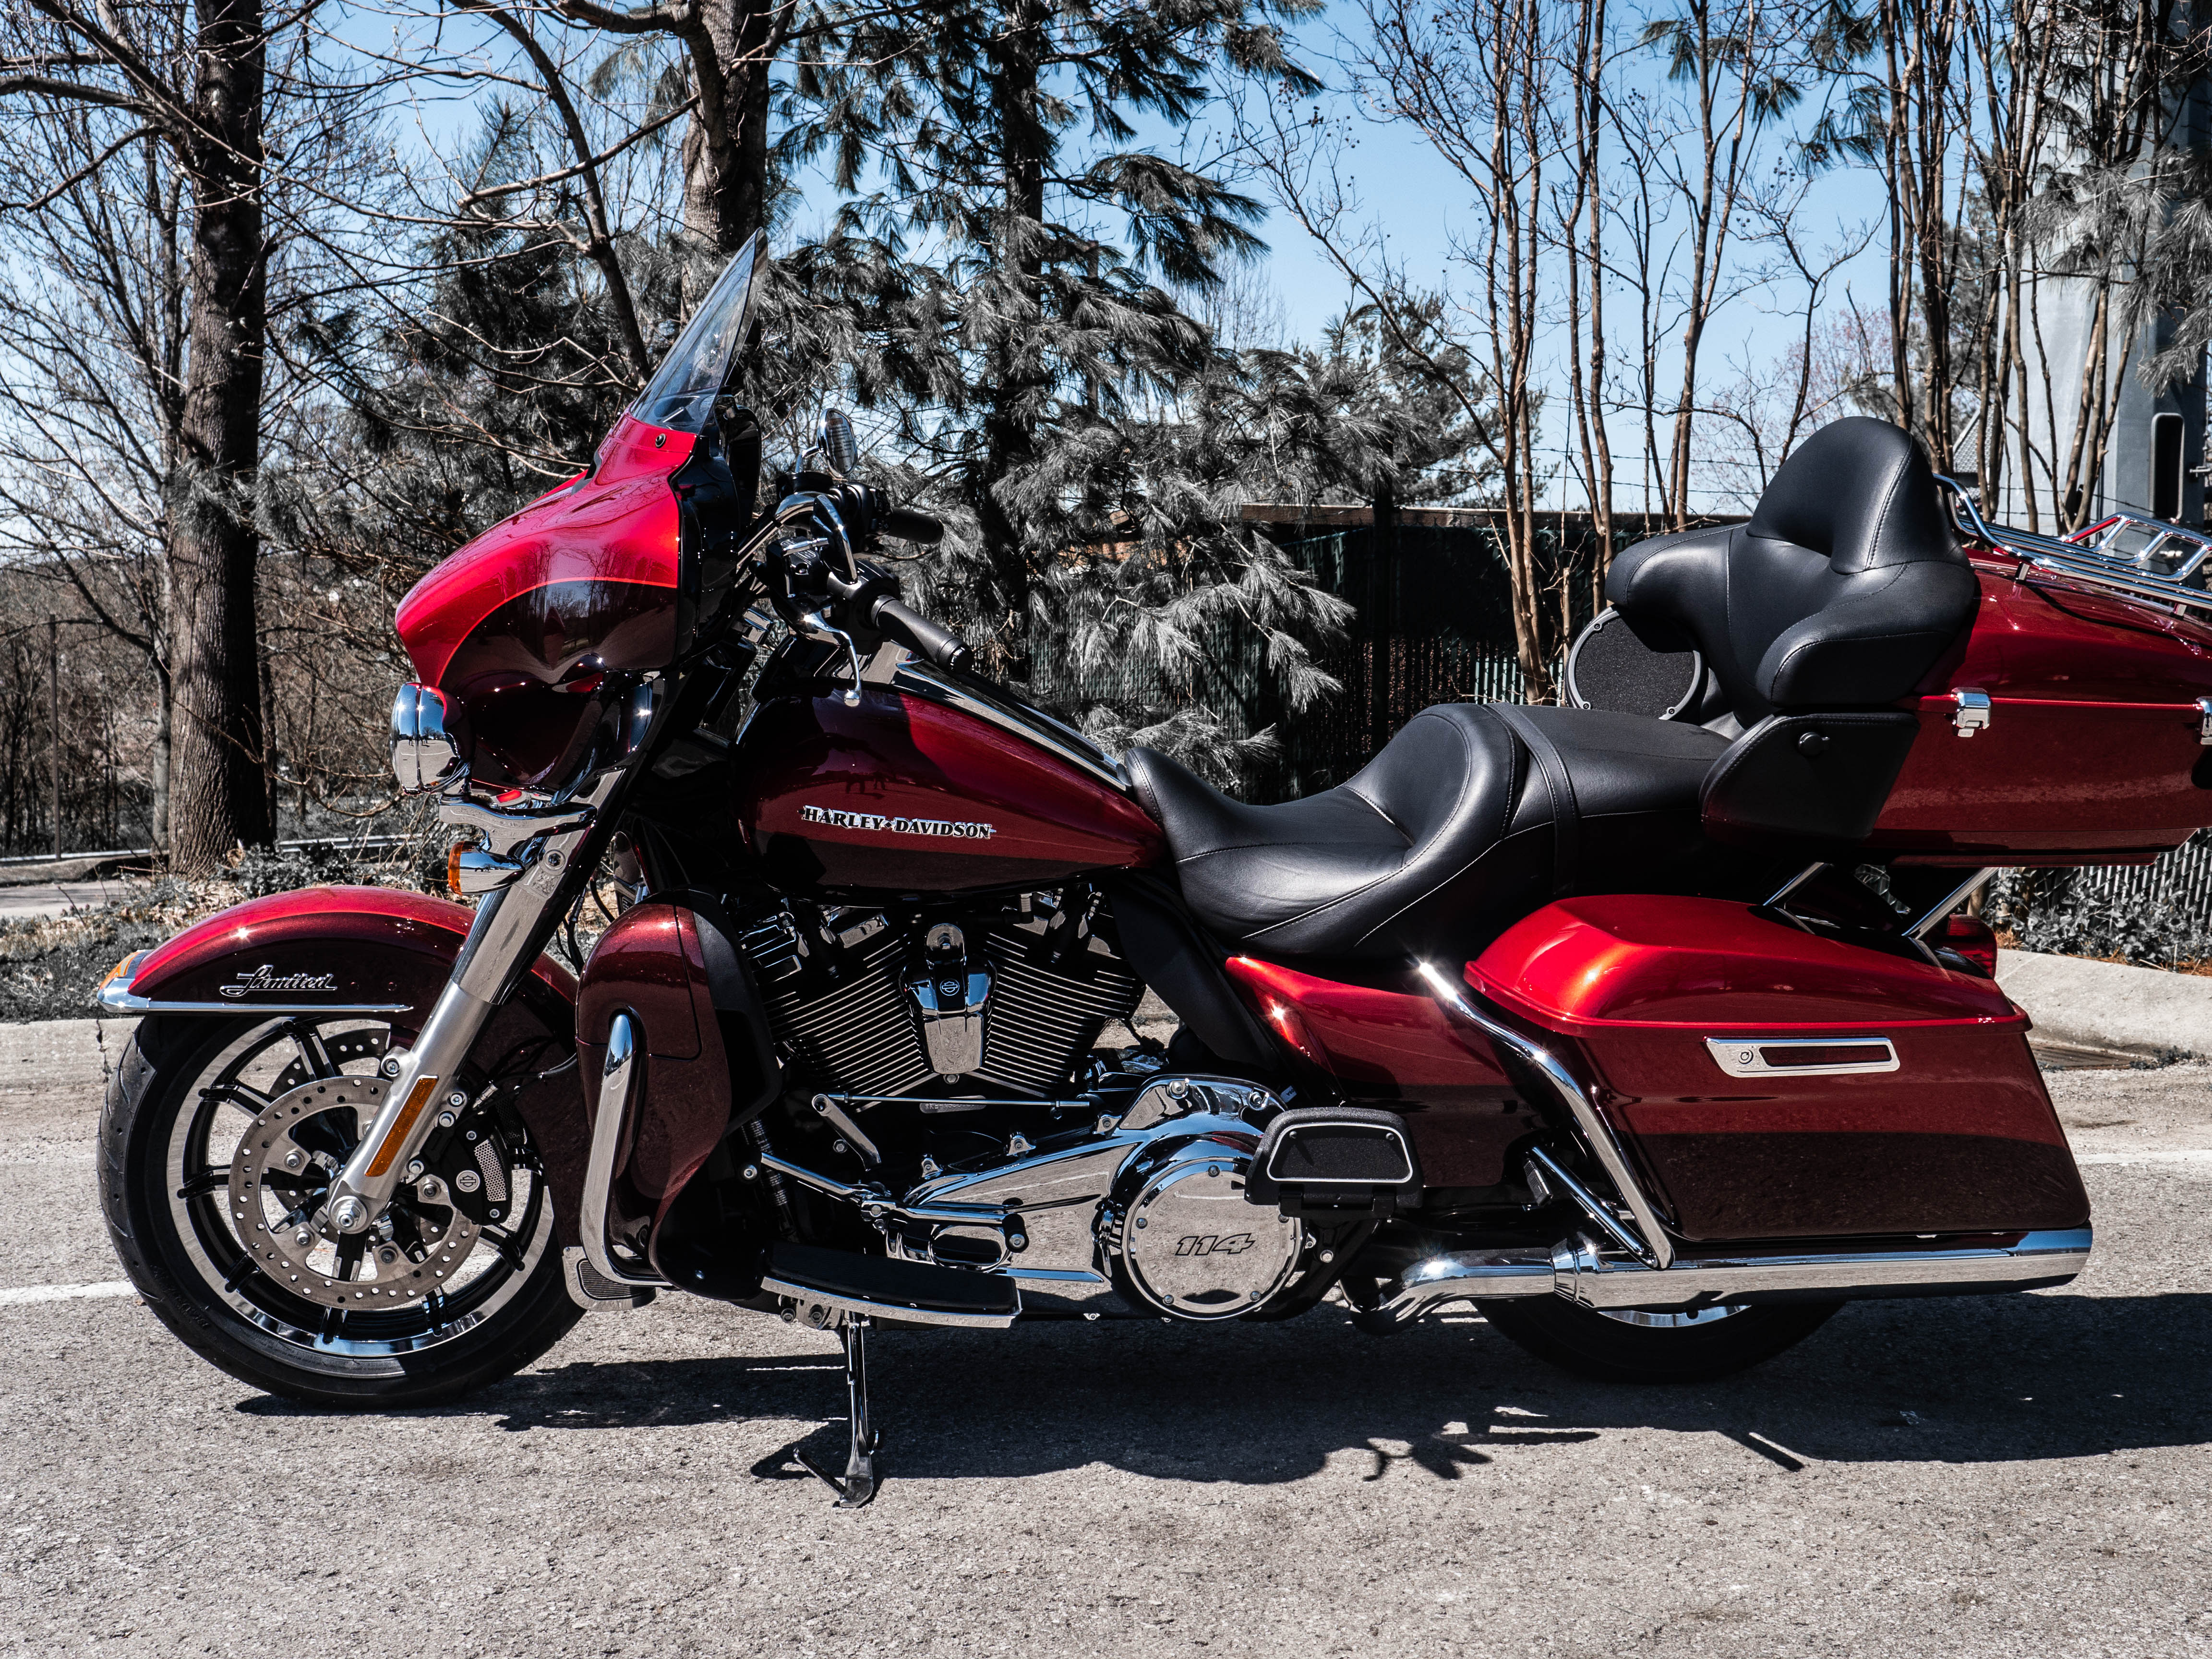 New 2019 Harley-Davidson Touring Electra Glide Ultra Limited